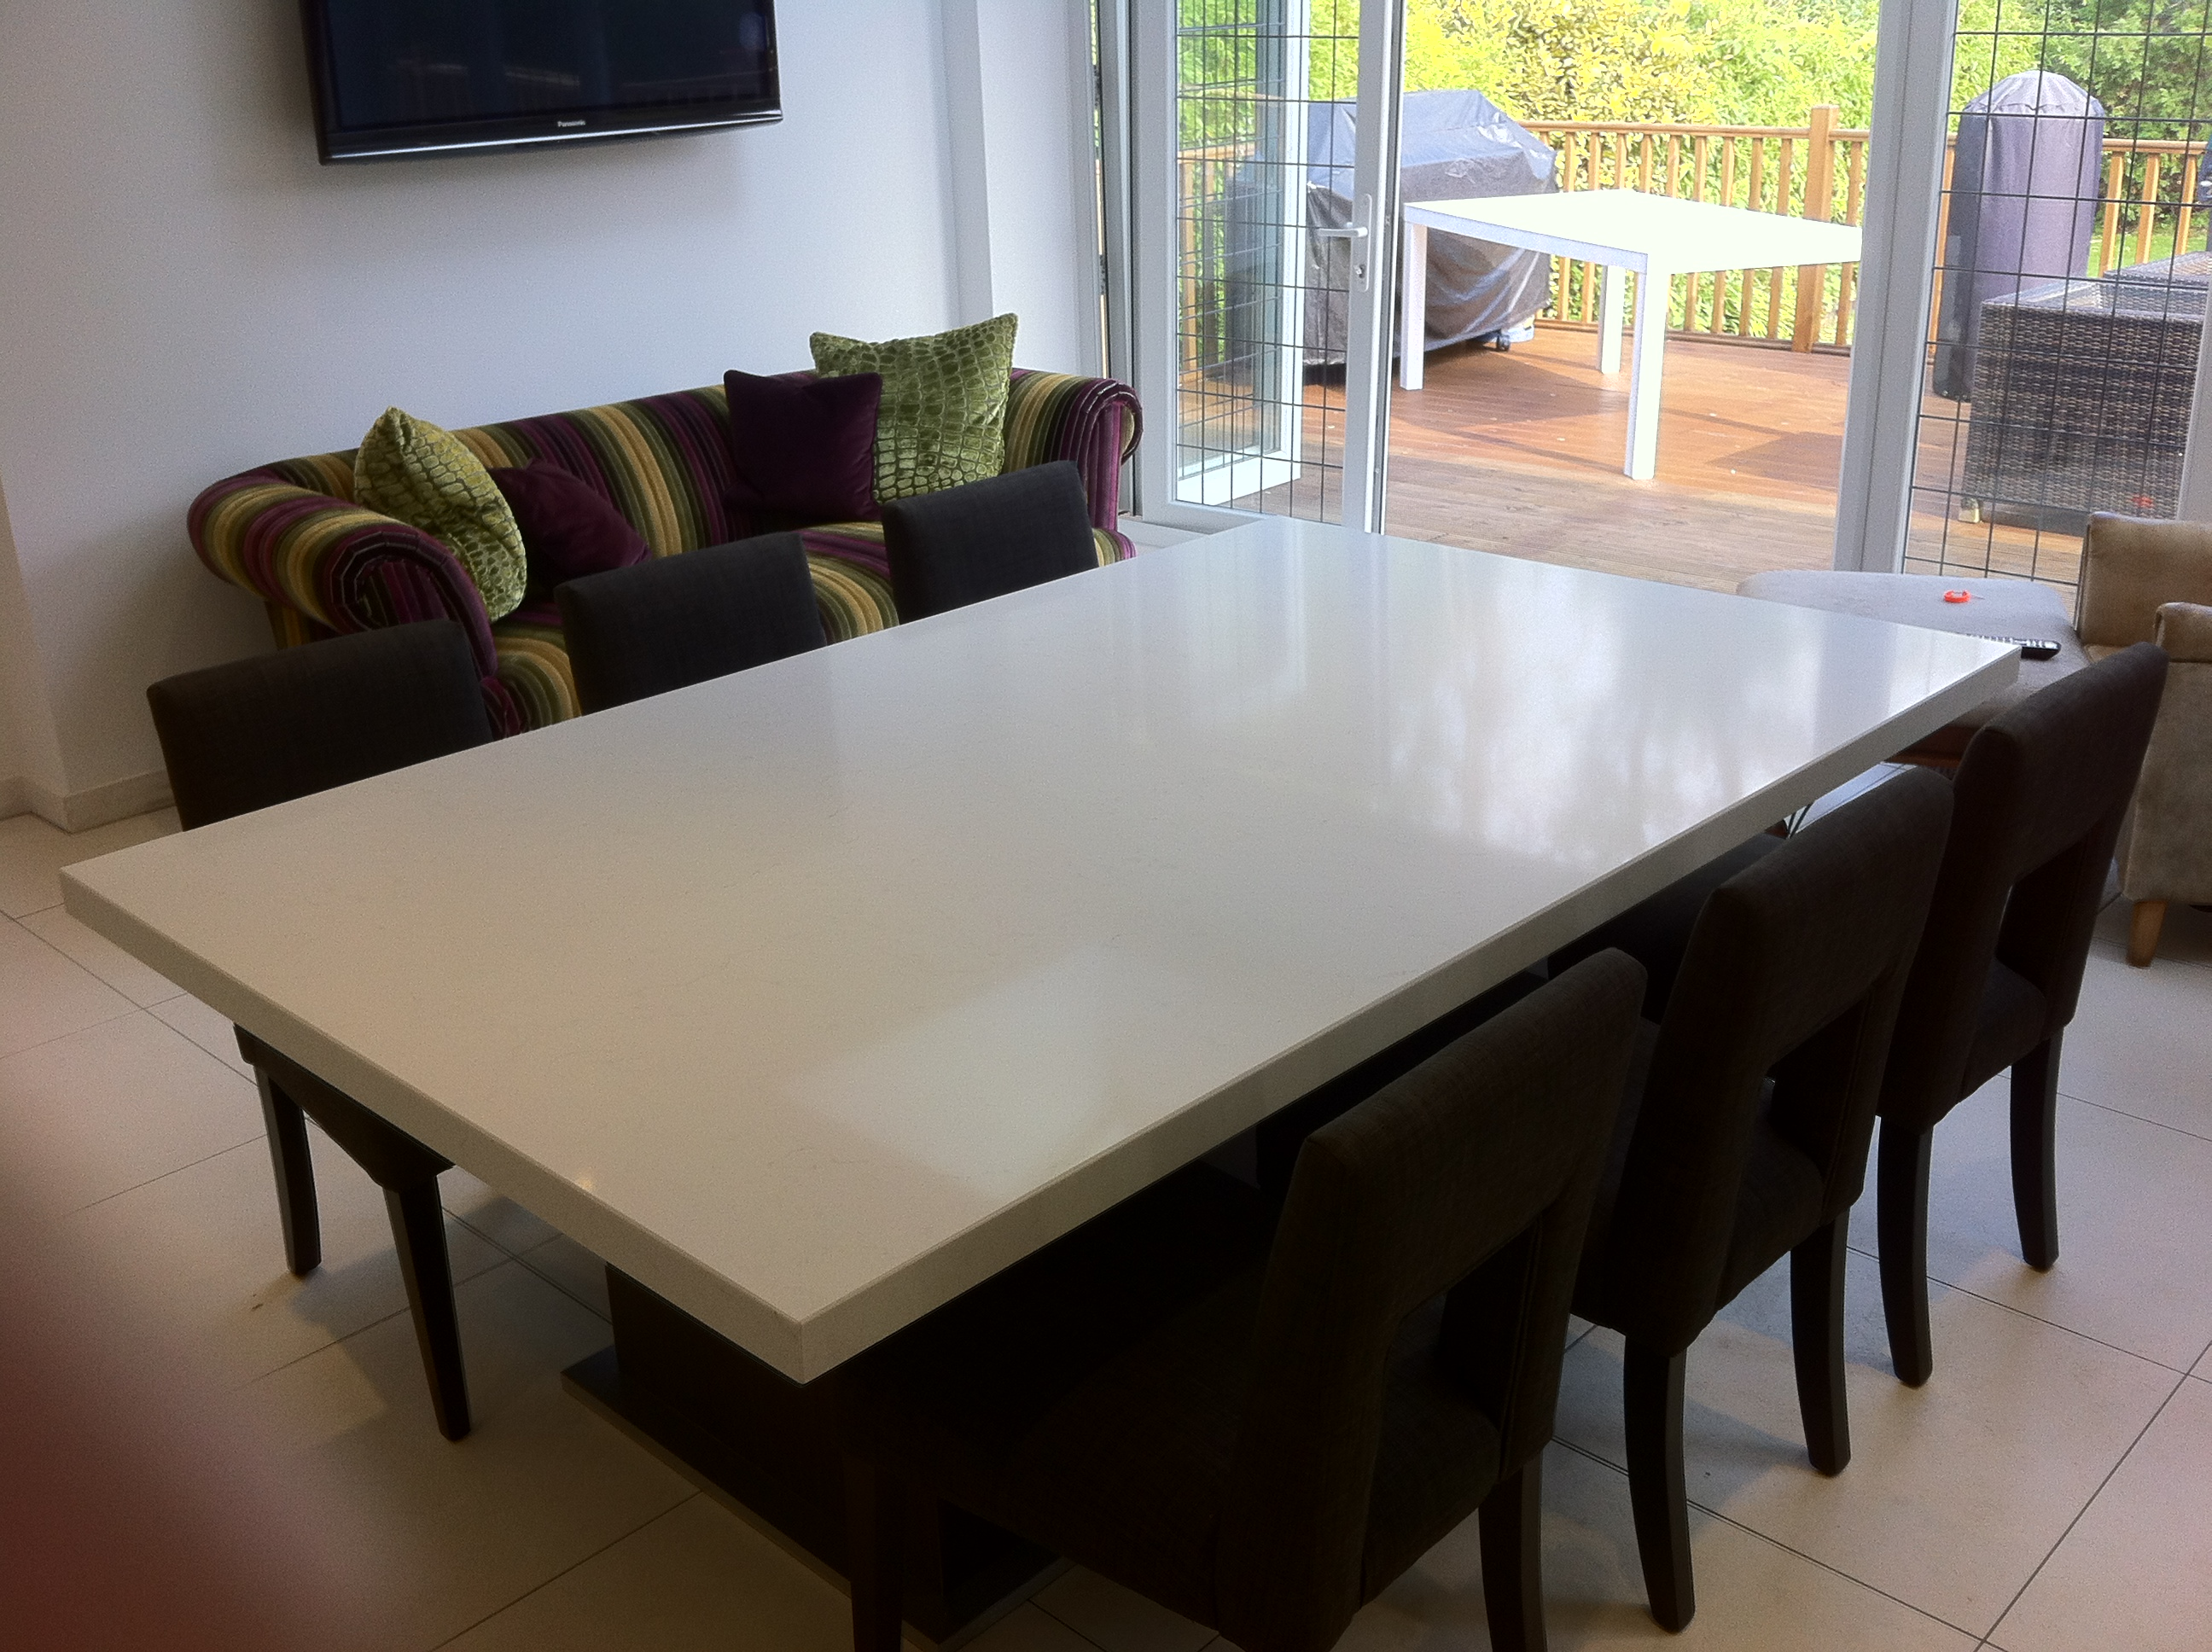 Image Result For Small Table And Chairs For The Kitchen